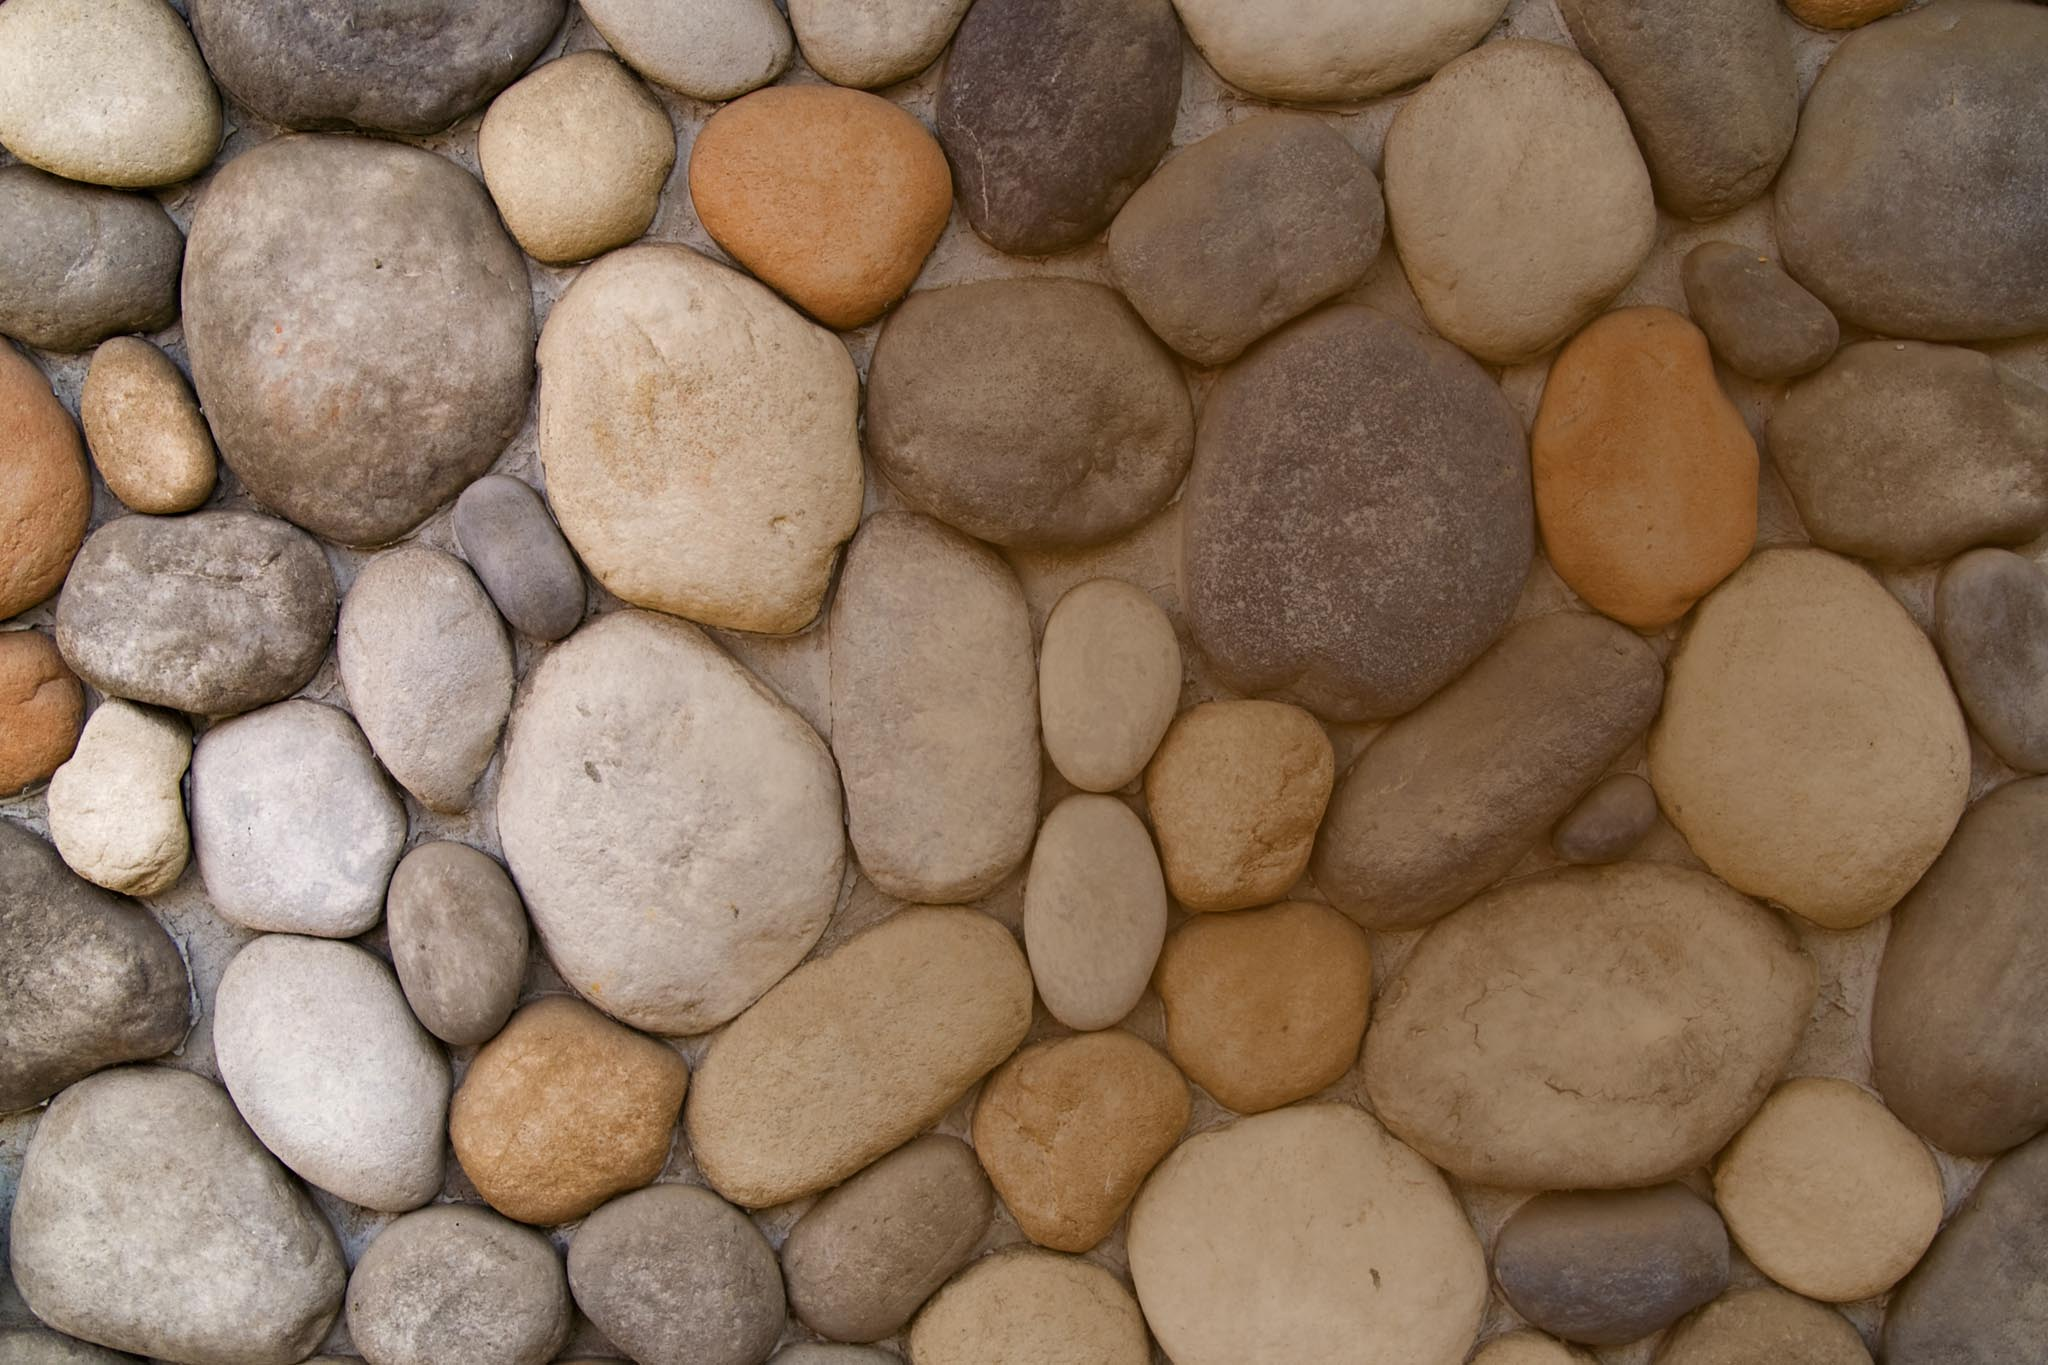 background image of river stones